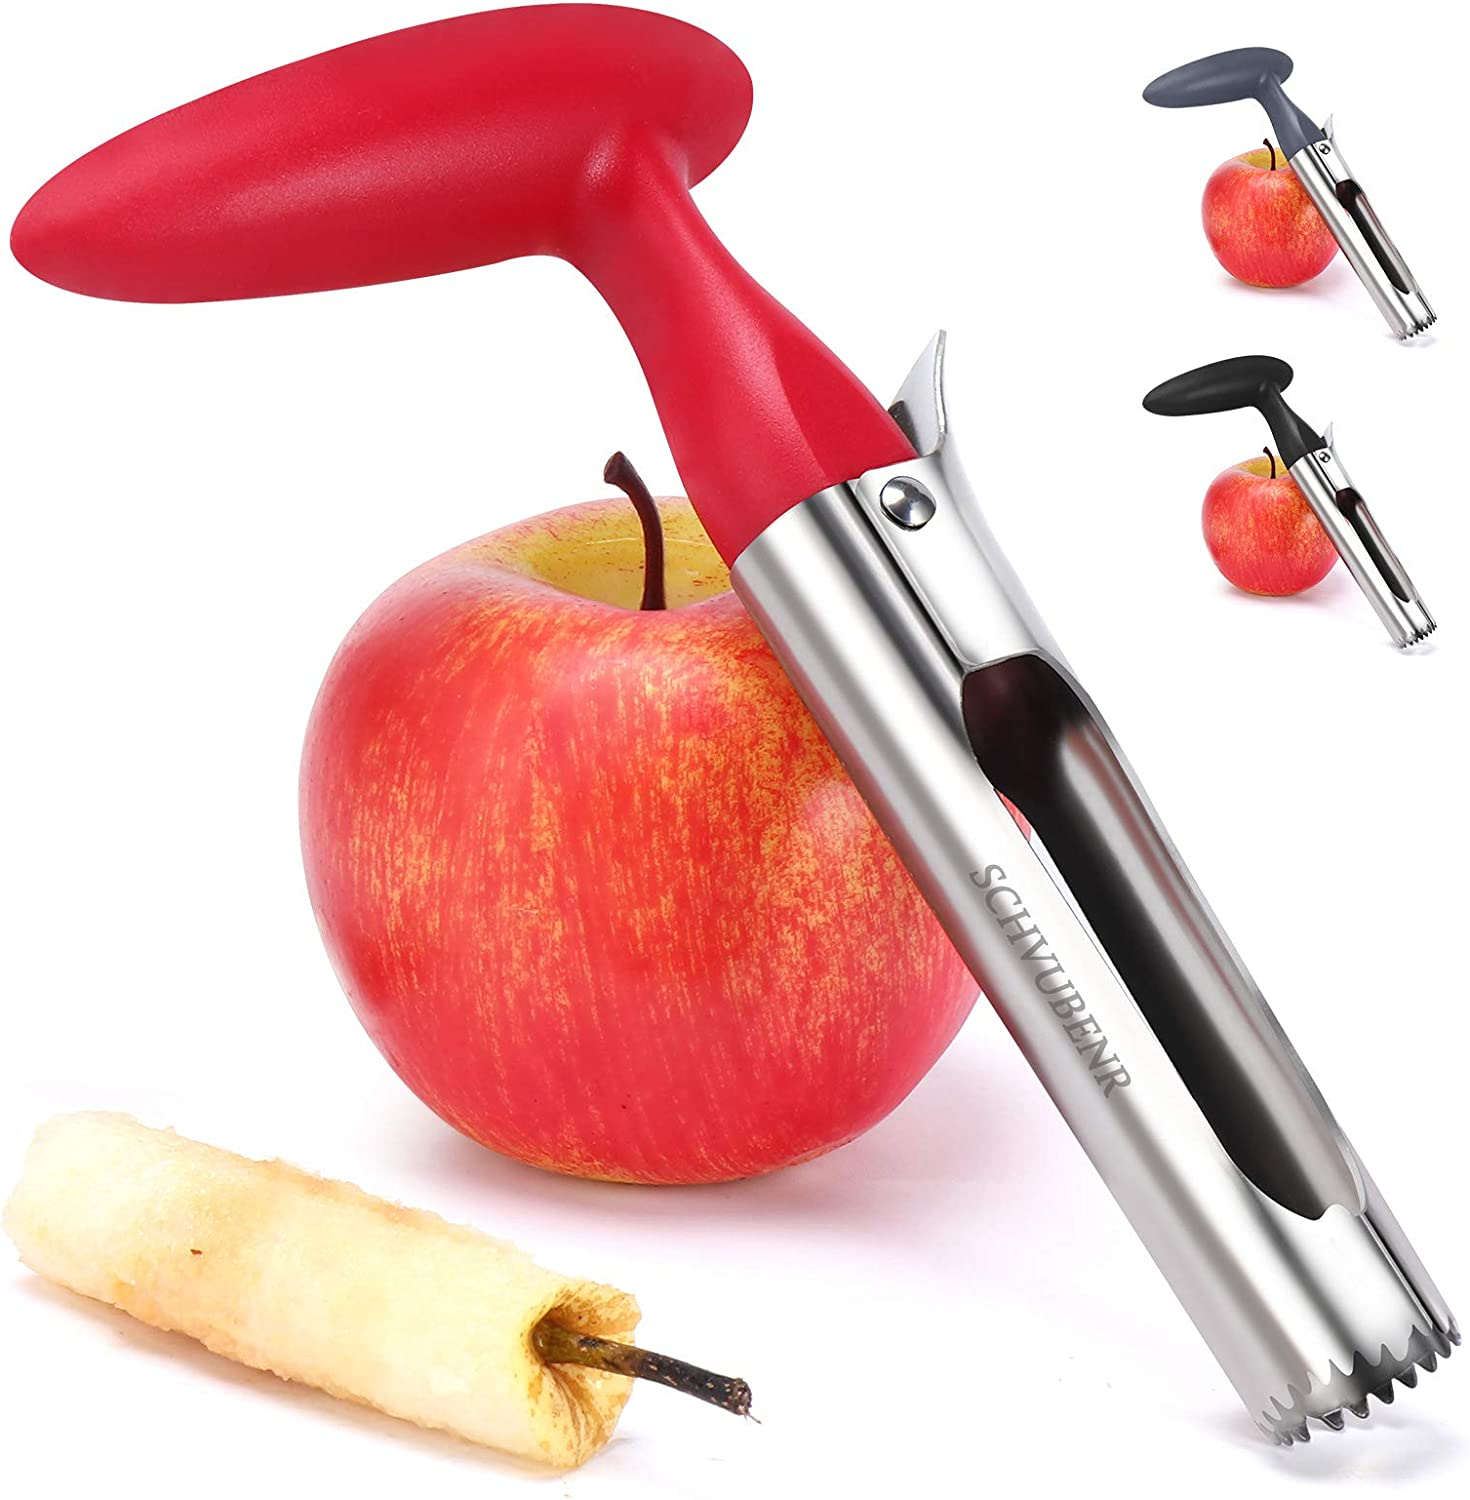 SCHVUBENR Premium Apple Corer Tool - Easy to Use and Clean - Sturdy Apple Core Remover with Sharp Serrature - Stainless Steel Corers for Apple and Pear - Core Fruits with Ease(Red)